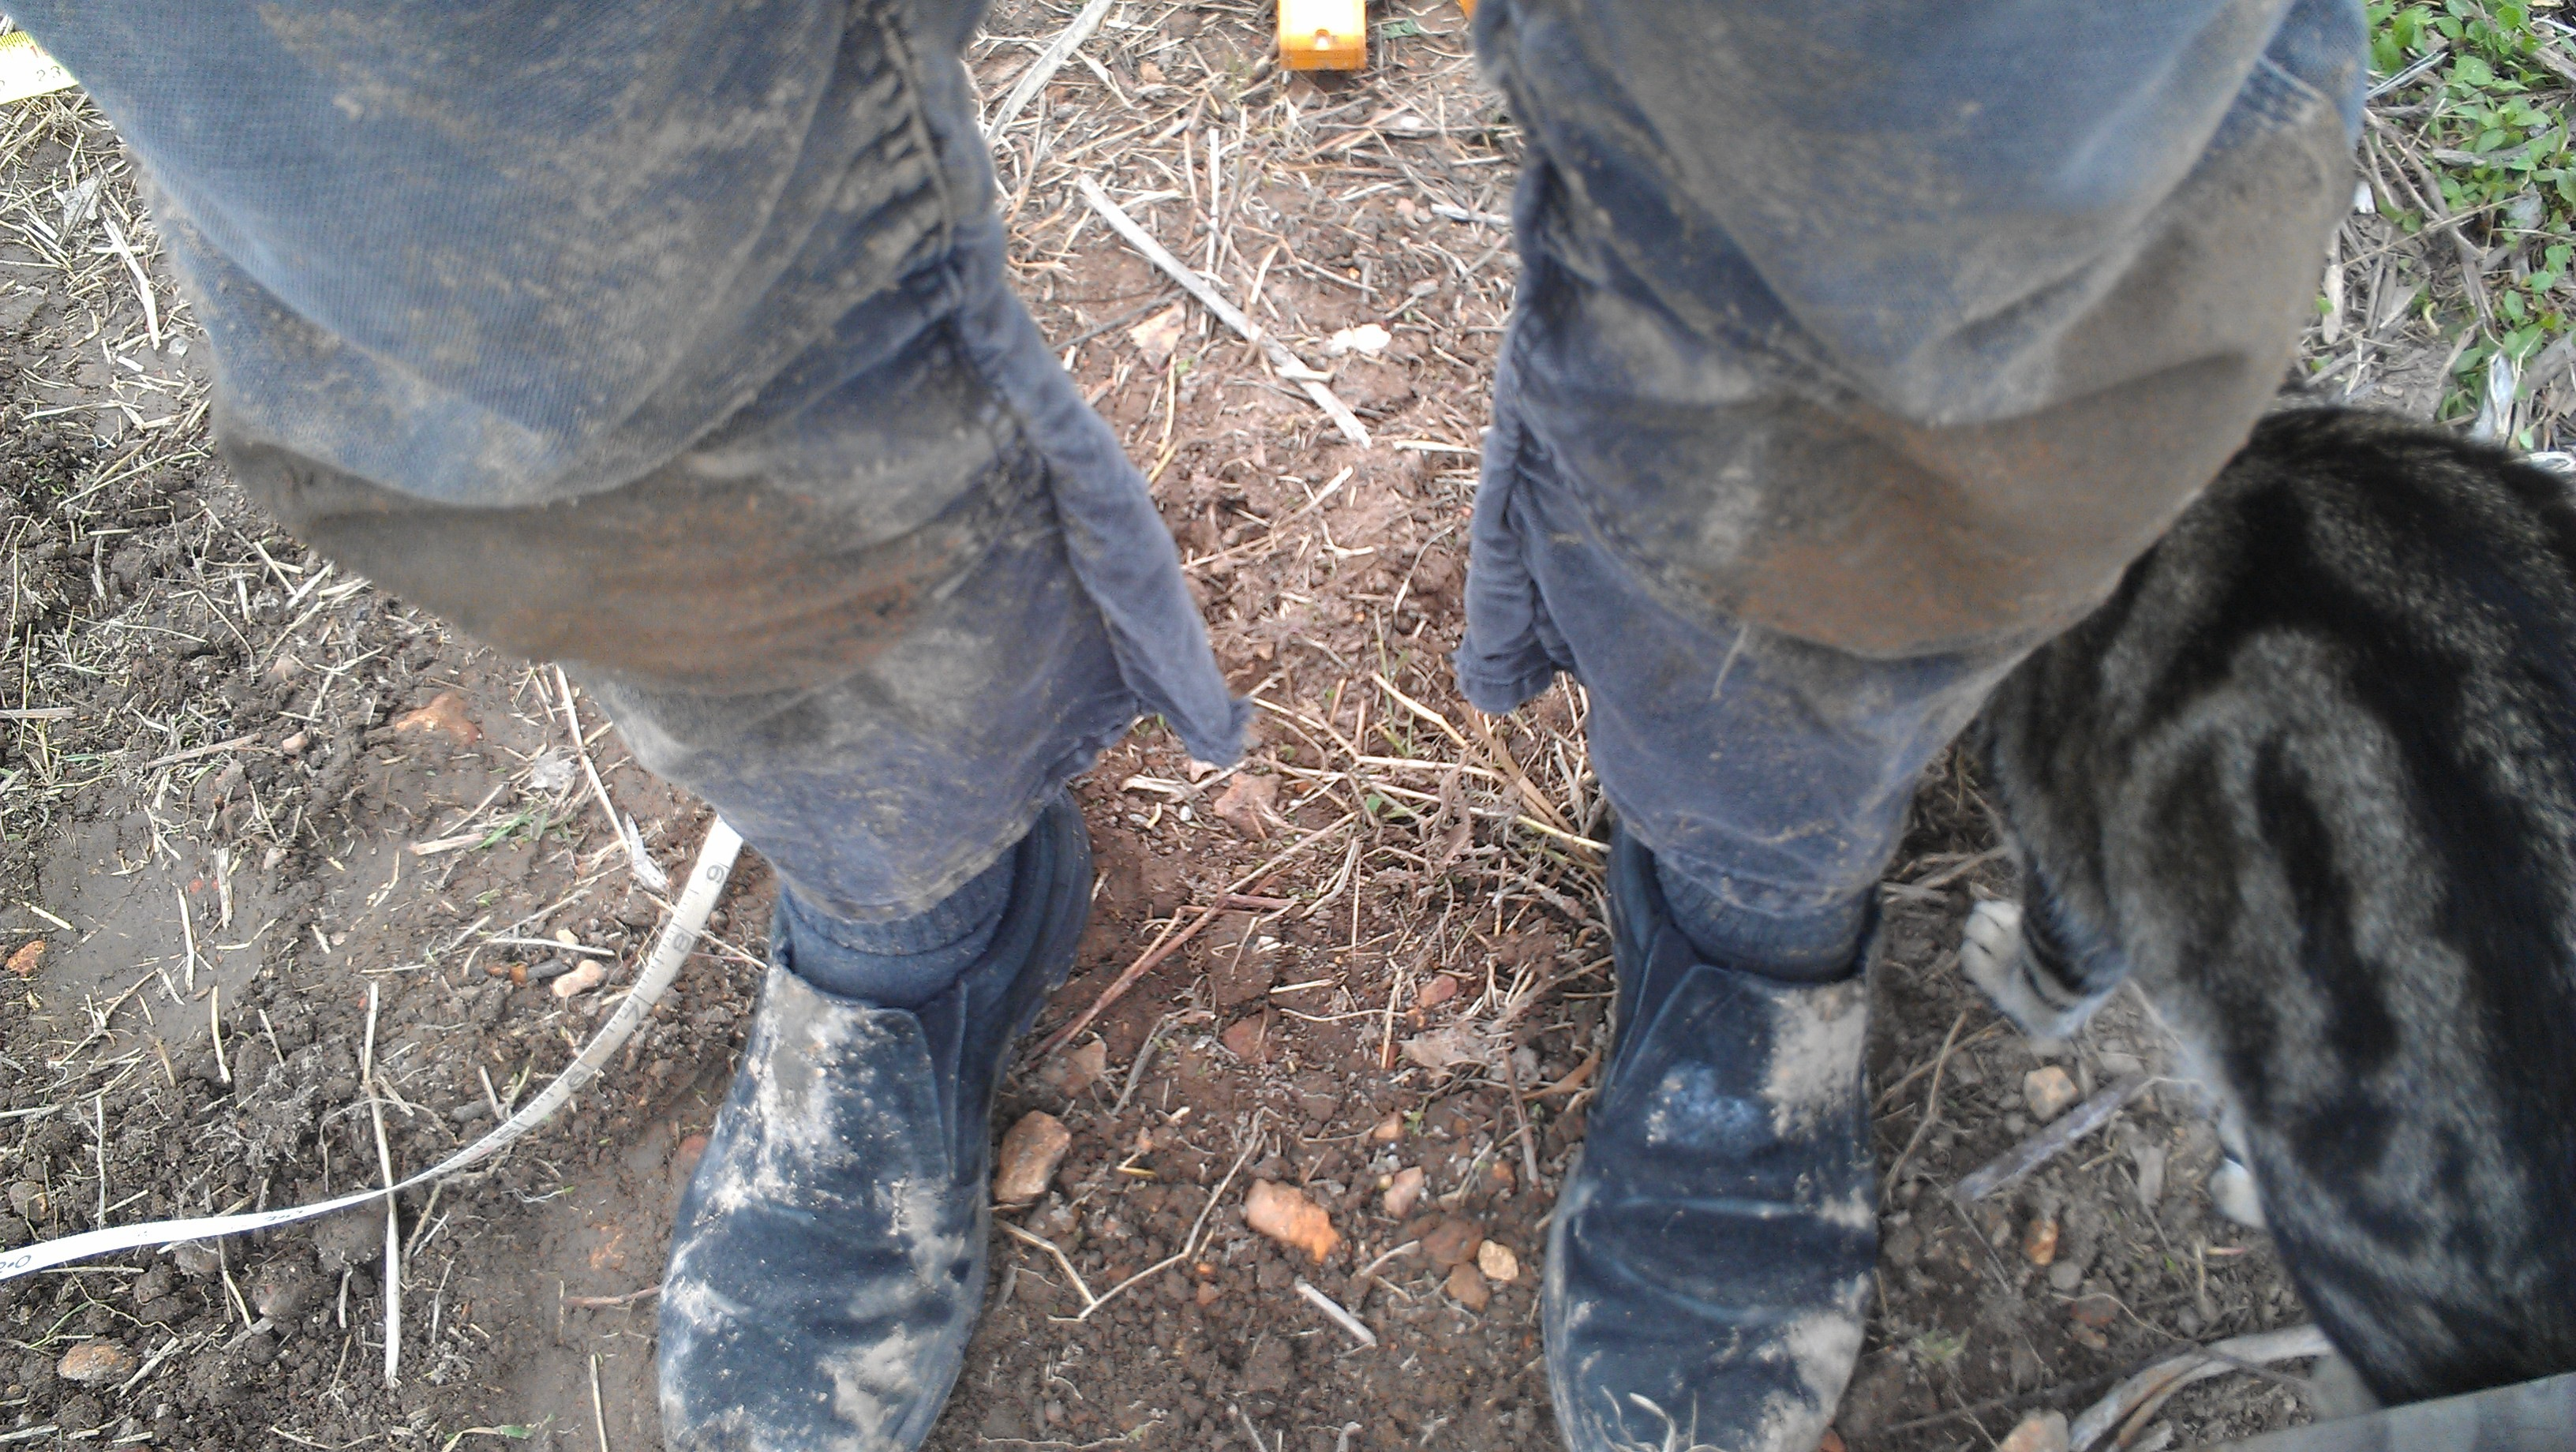 Mud from knees down